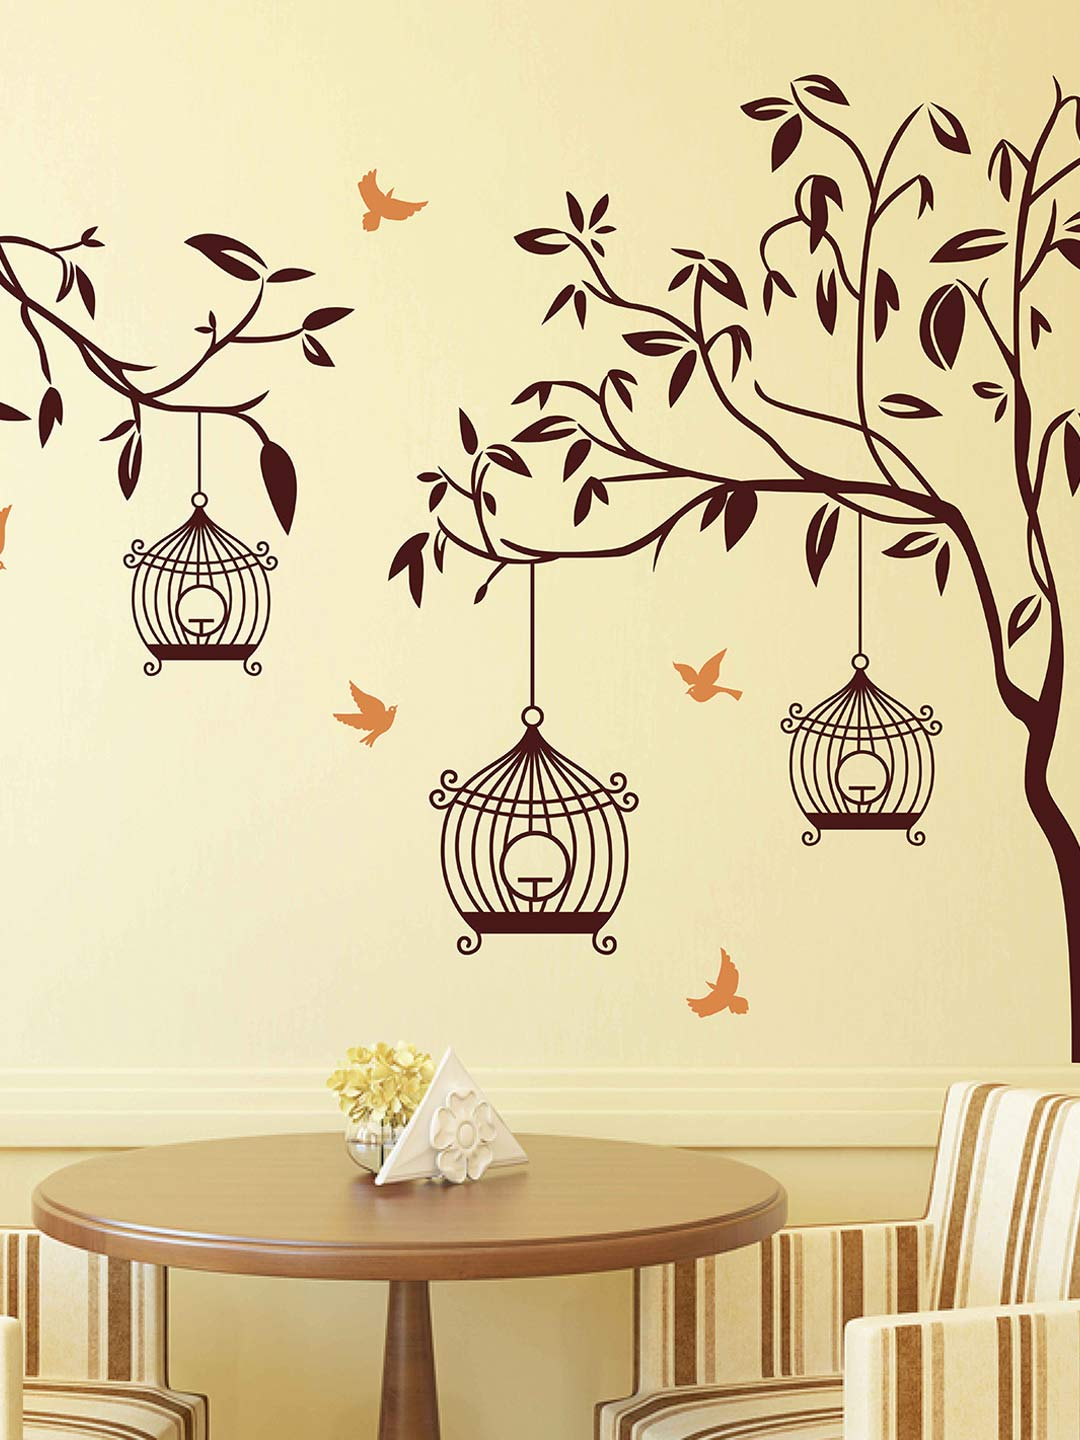 Aspire Brown Tree with Birds u0026 Cages Wall Sticker  sc 1 st  Myntra & Wall Stickers u0026 Decals - Buy Wall Decals u0026 Sticker Online | Myntra